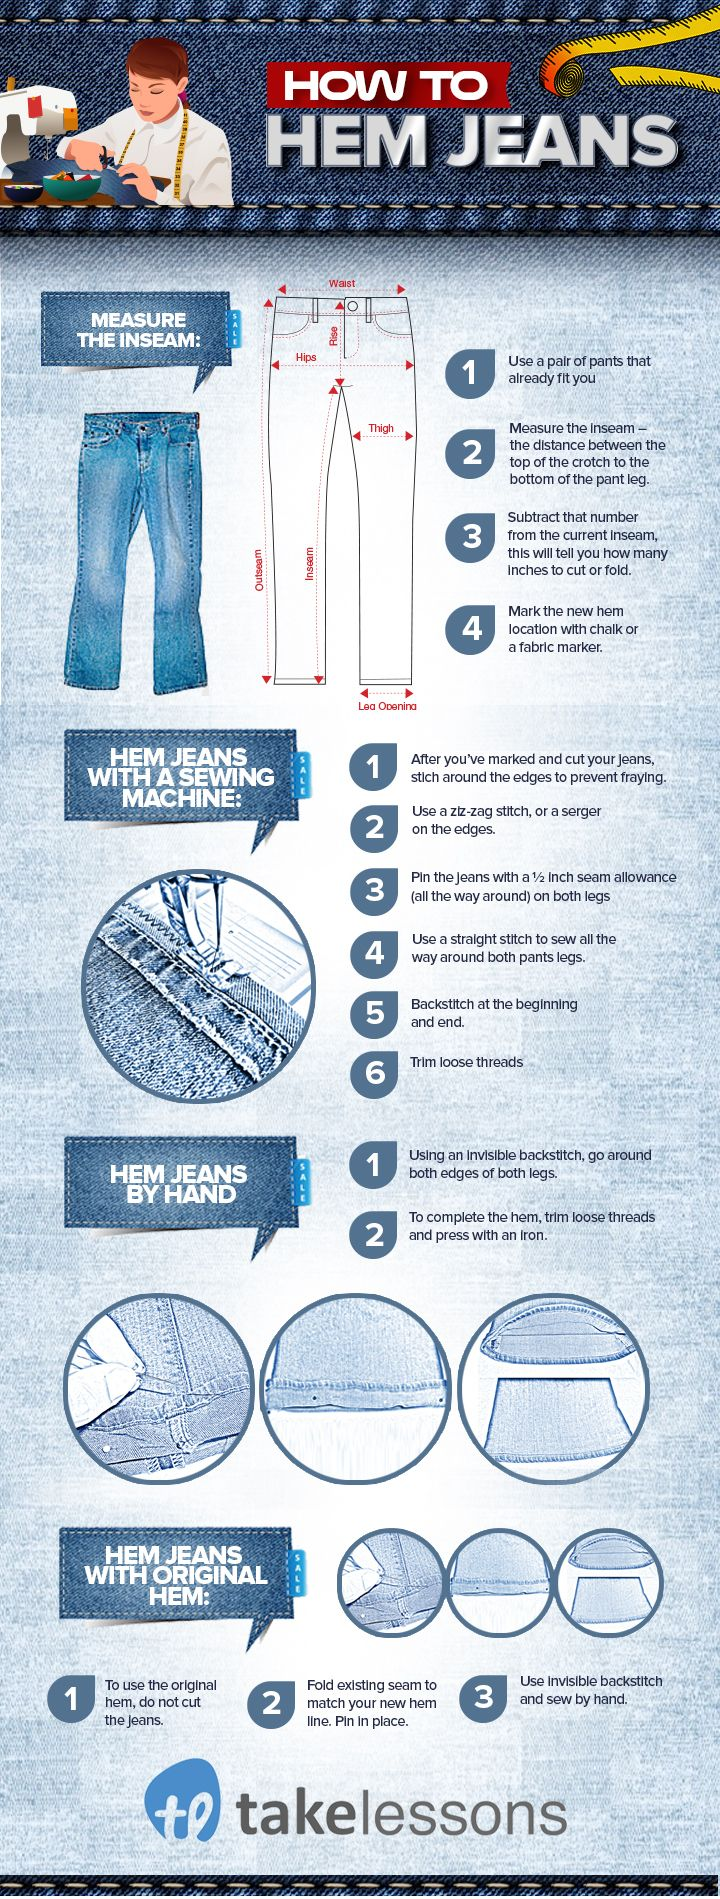 How to Hem Jeans: A Step-by-Step Guide for Beginners [Infographic]